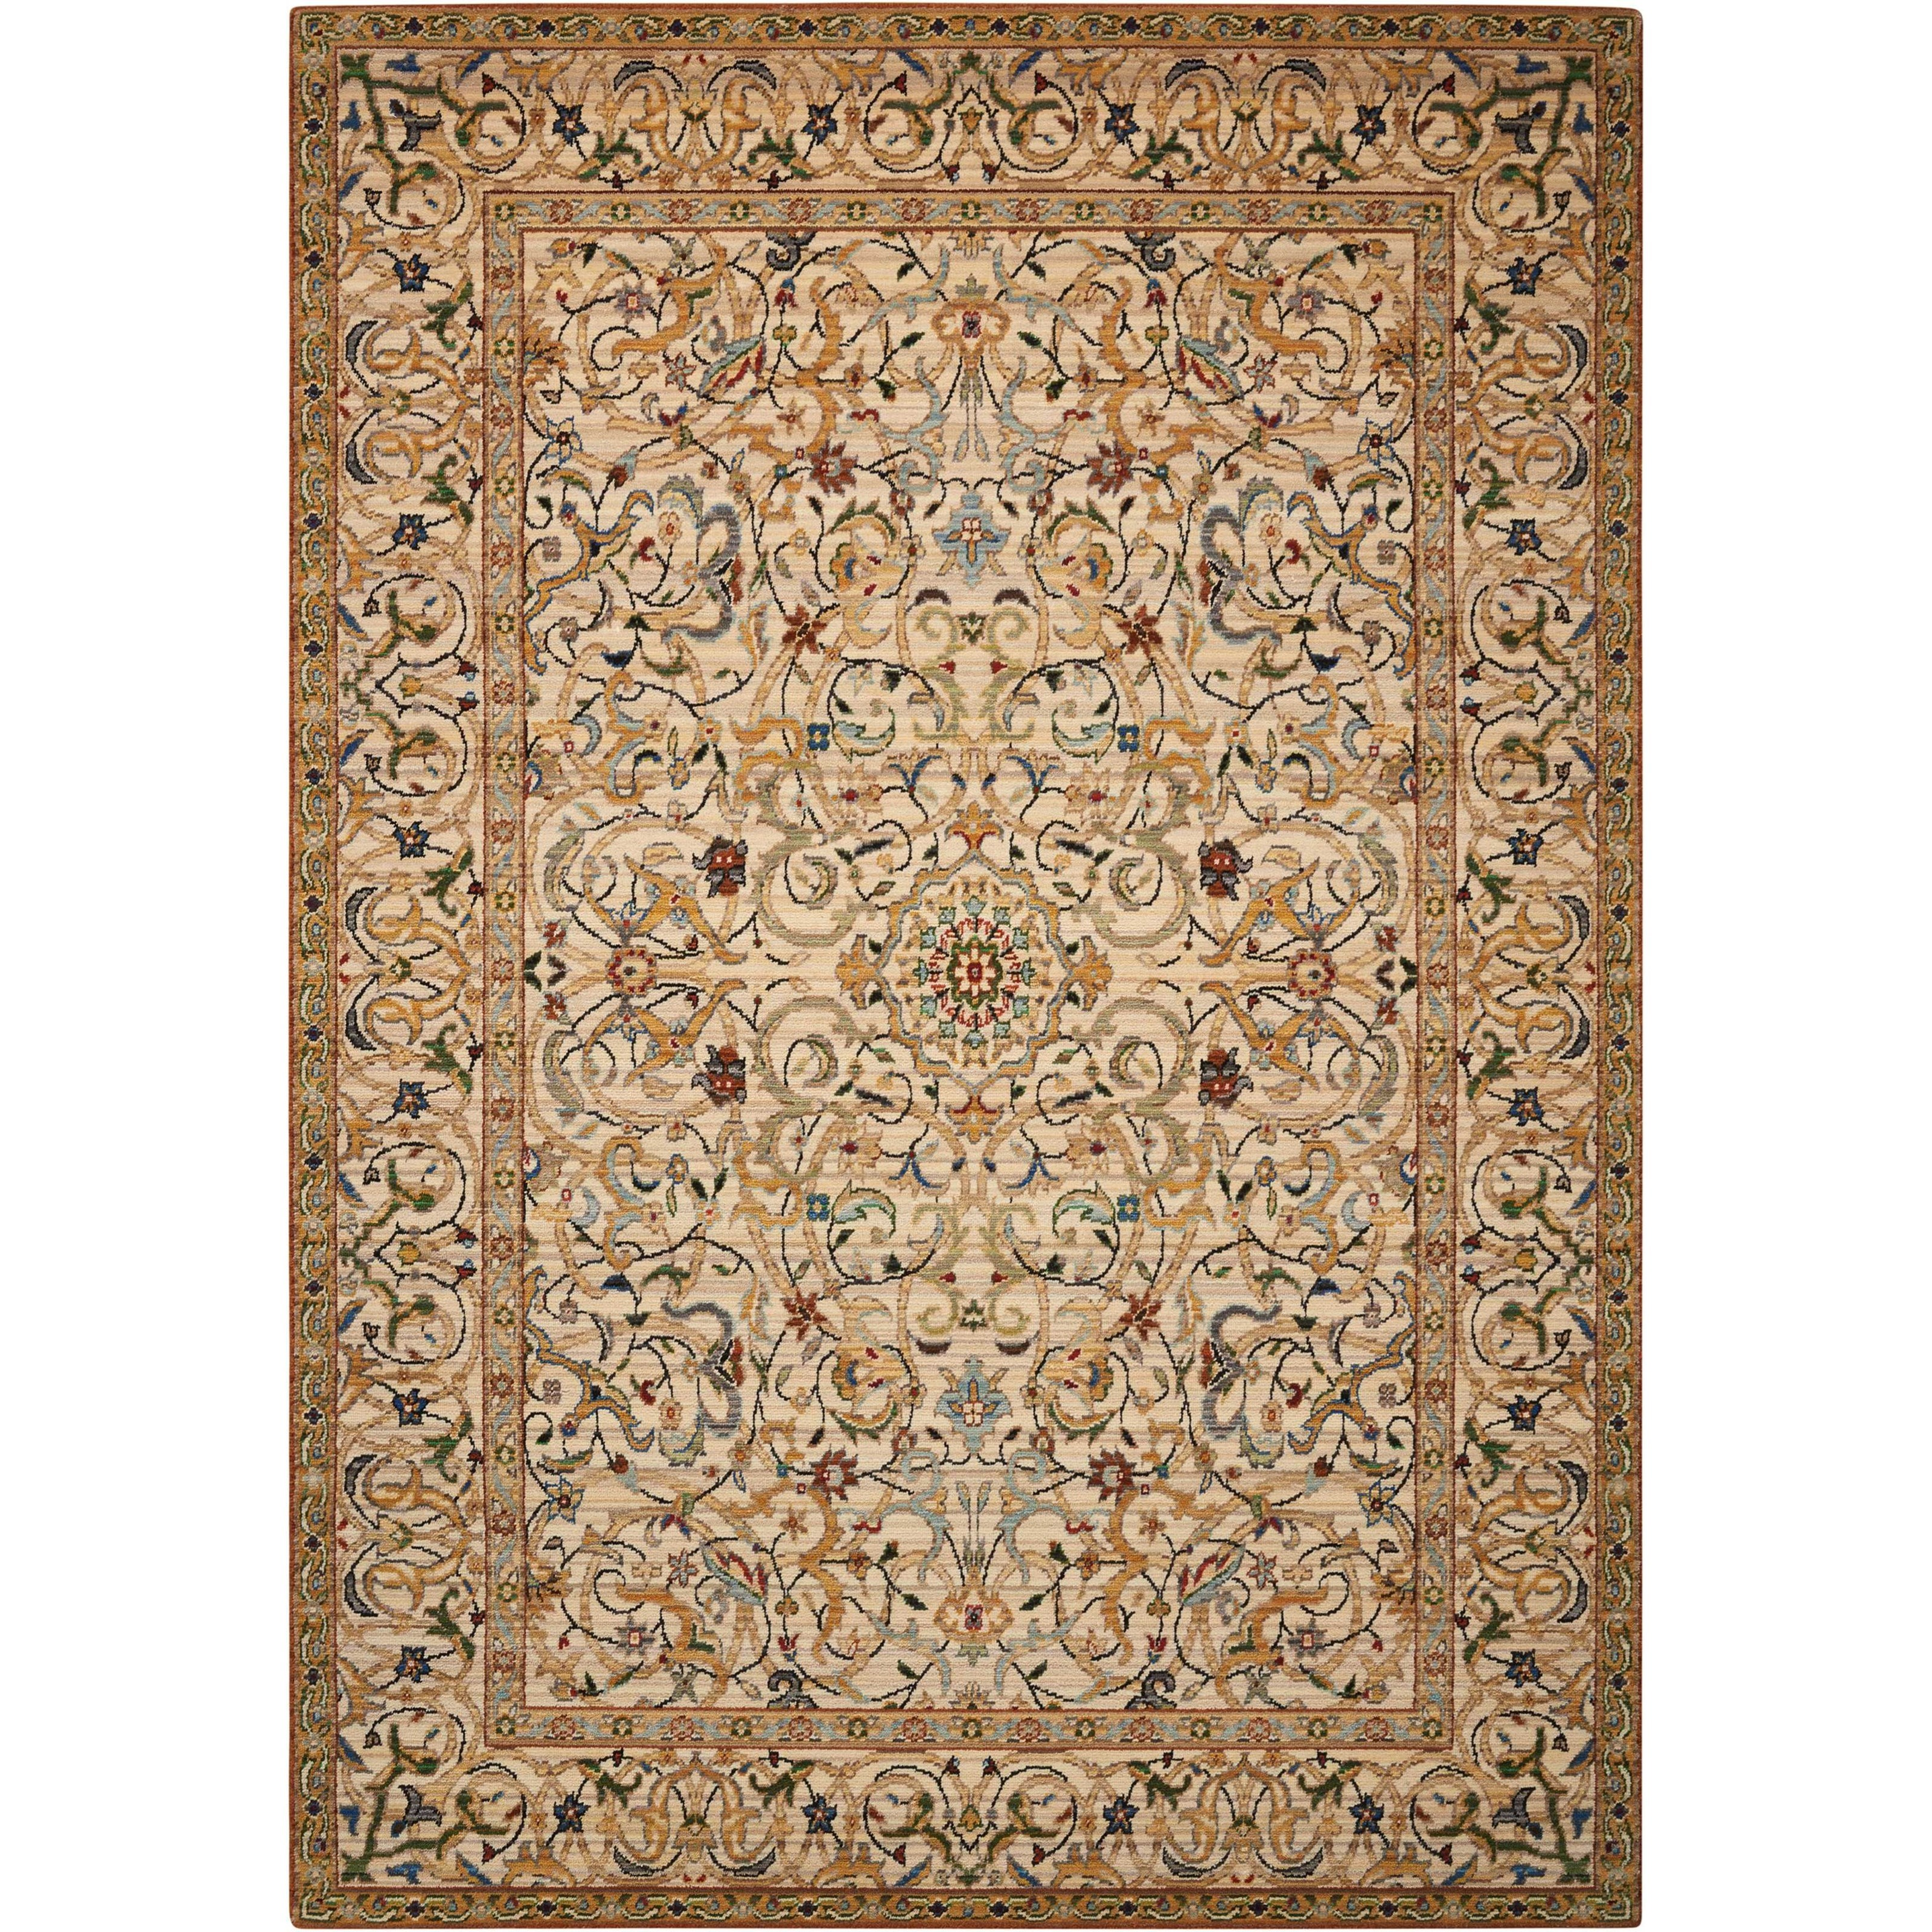 "5'6"" x 8' Copper Rectangle Rug"